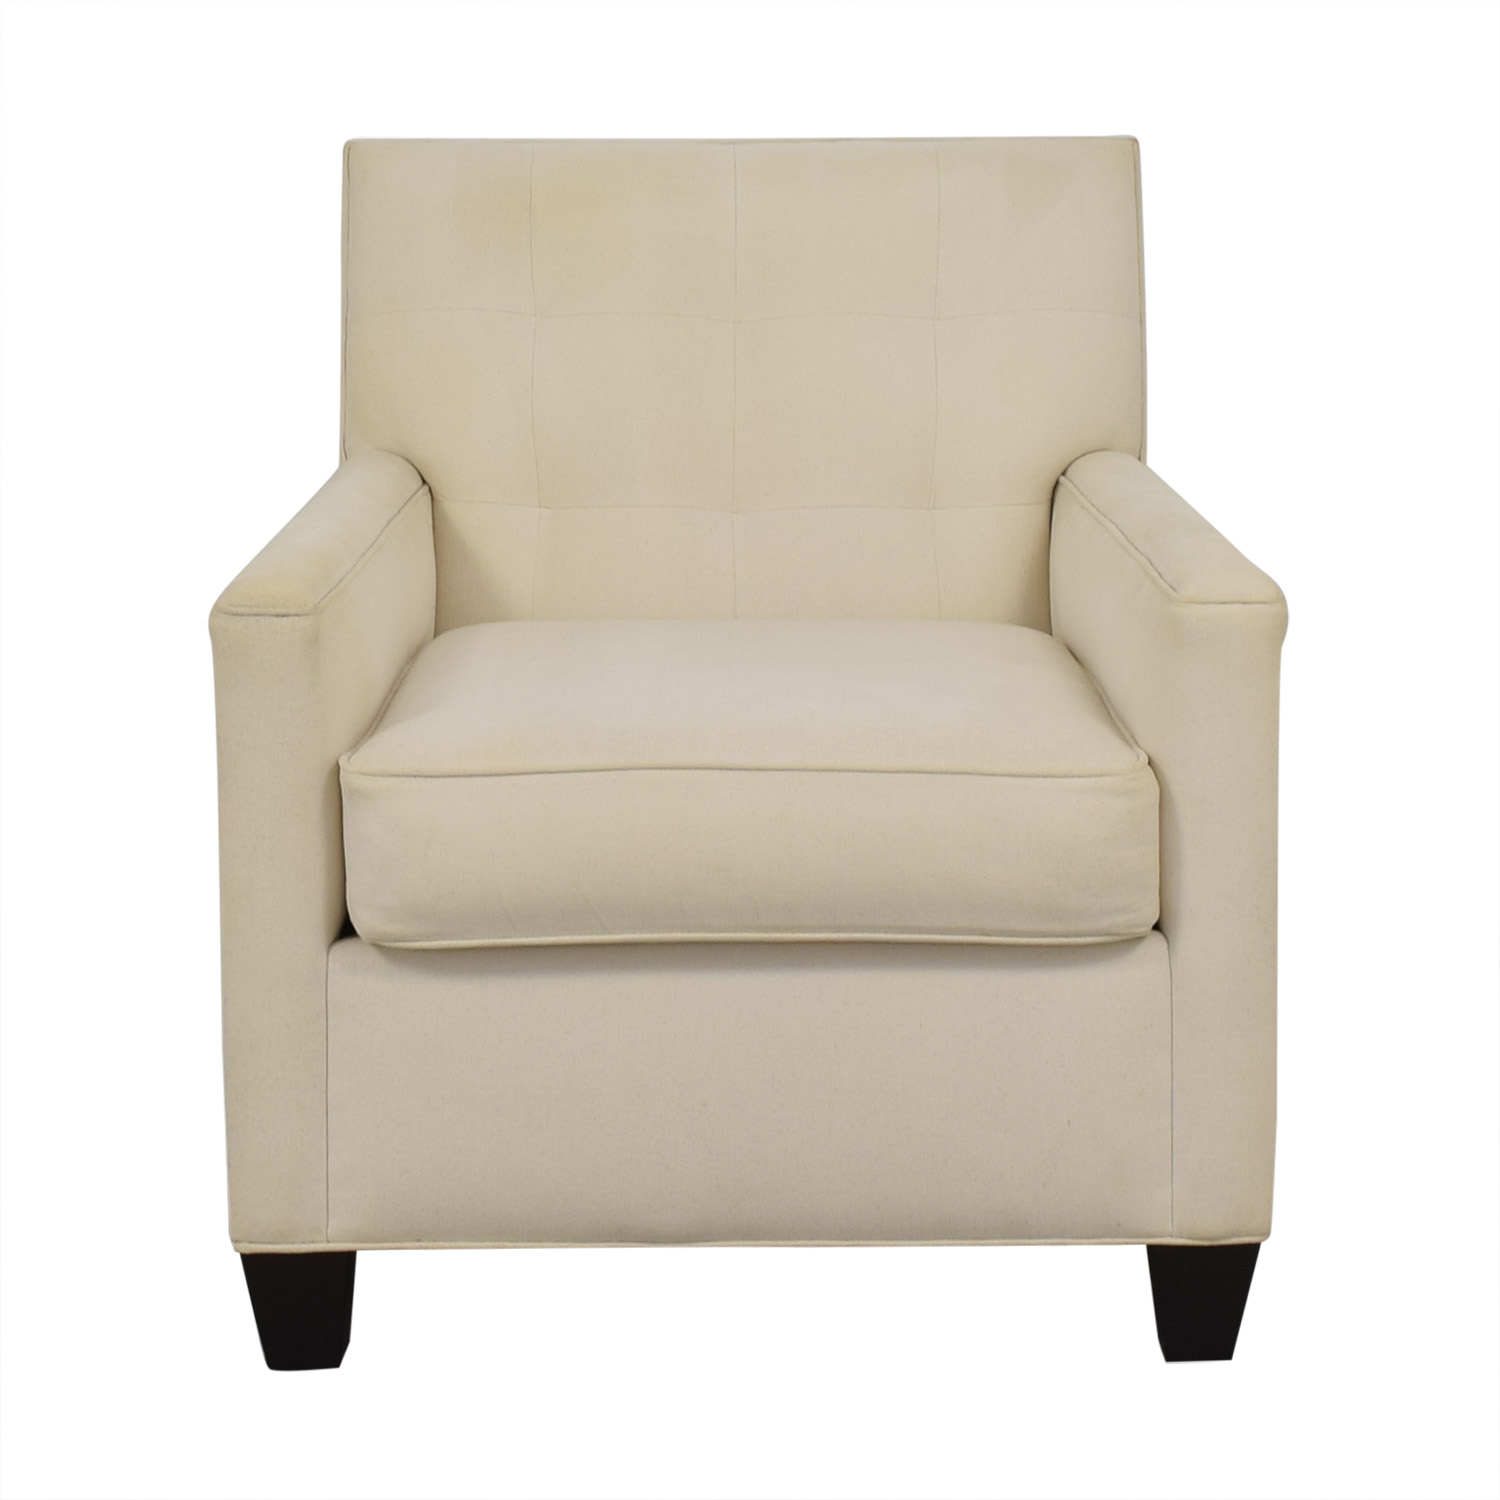 Nathan Anthony Nathan Anthony Lounge Chair Accent Chairs